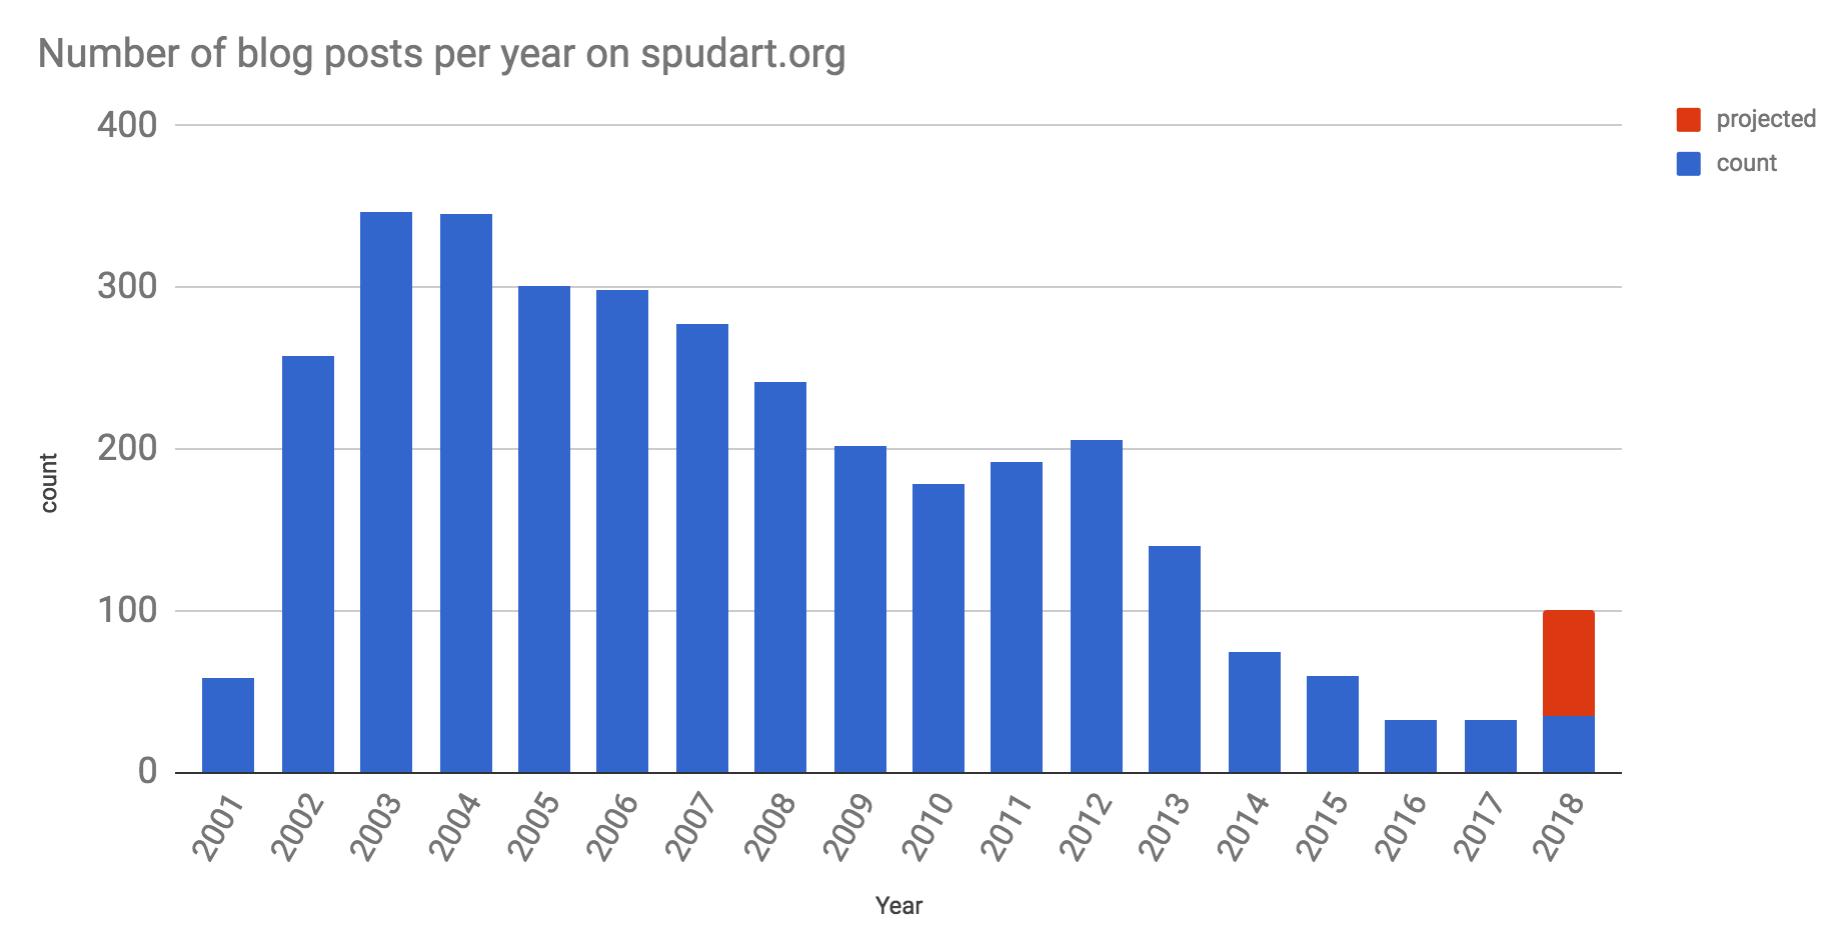 Number of blog posts per year on spudart.org since 2001